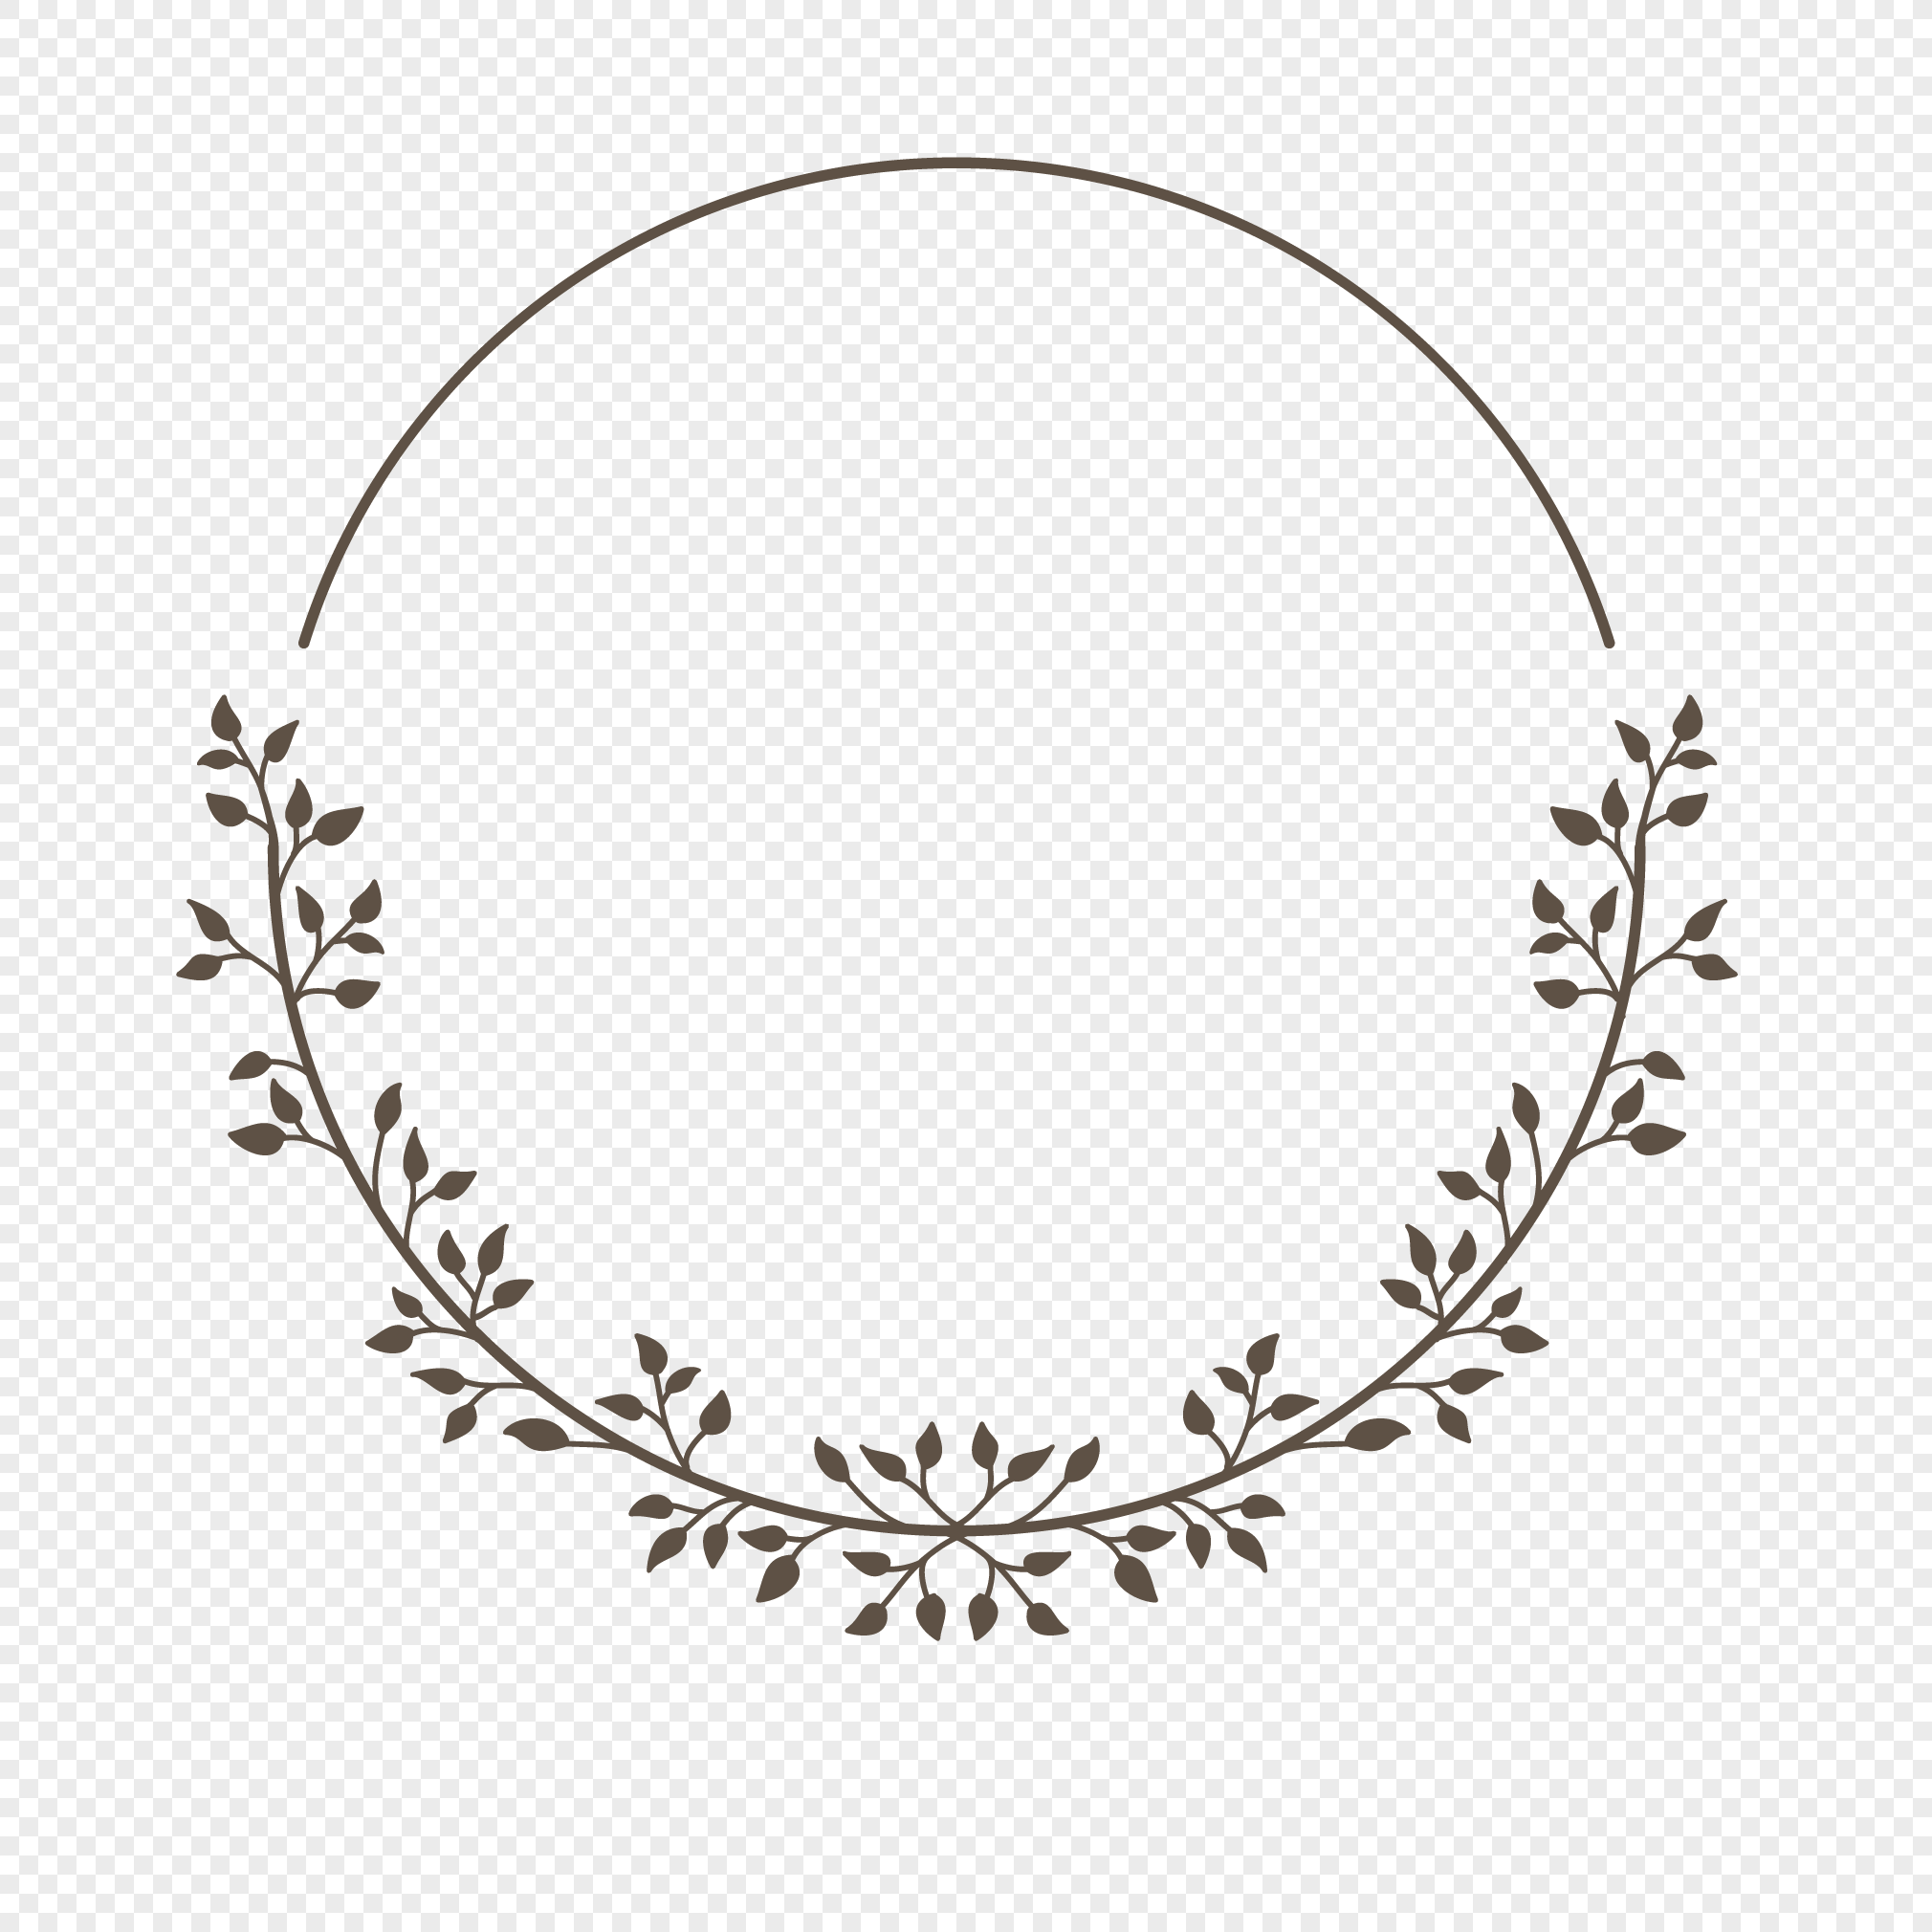 Black And White Line Drawing Circular Plant Border Design Materi Png